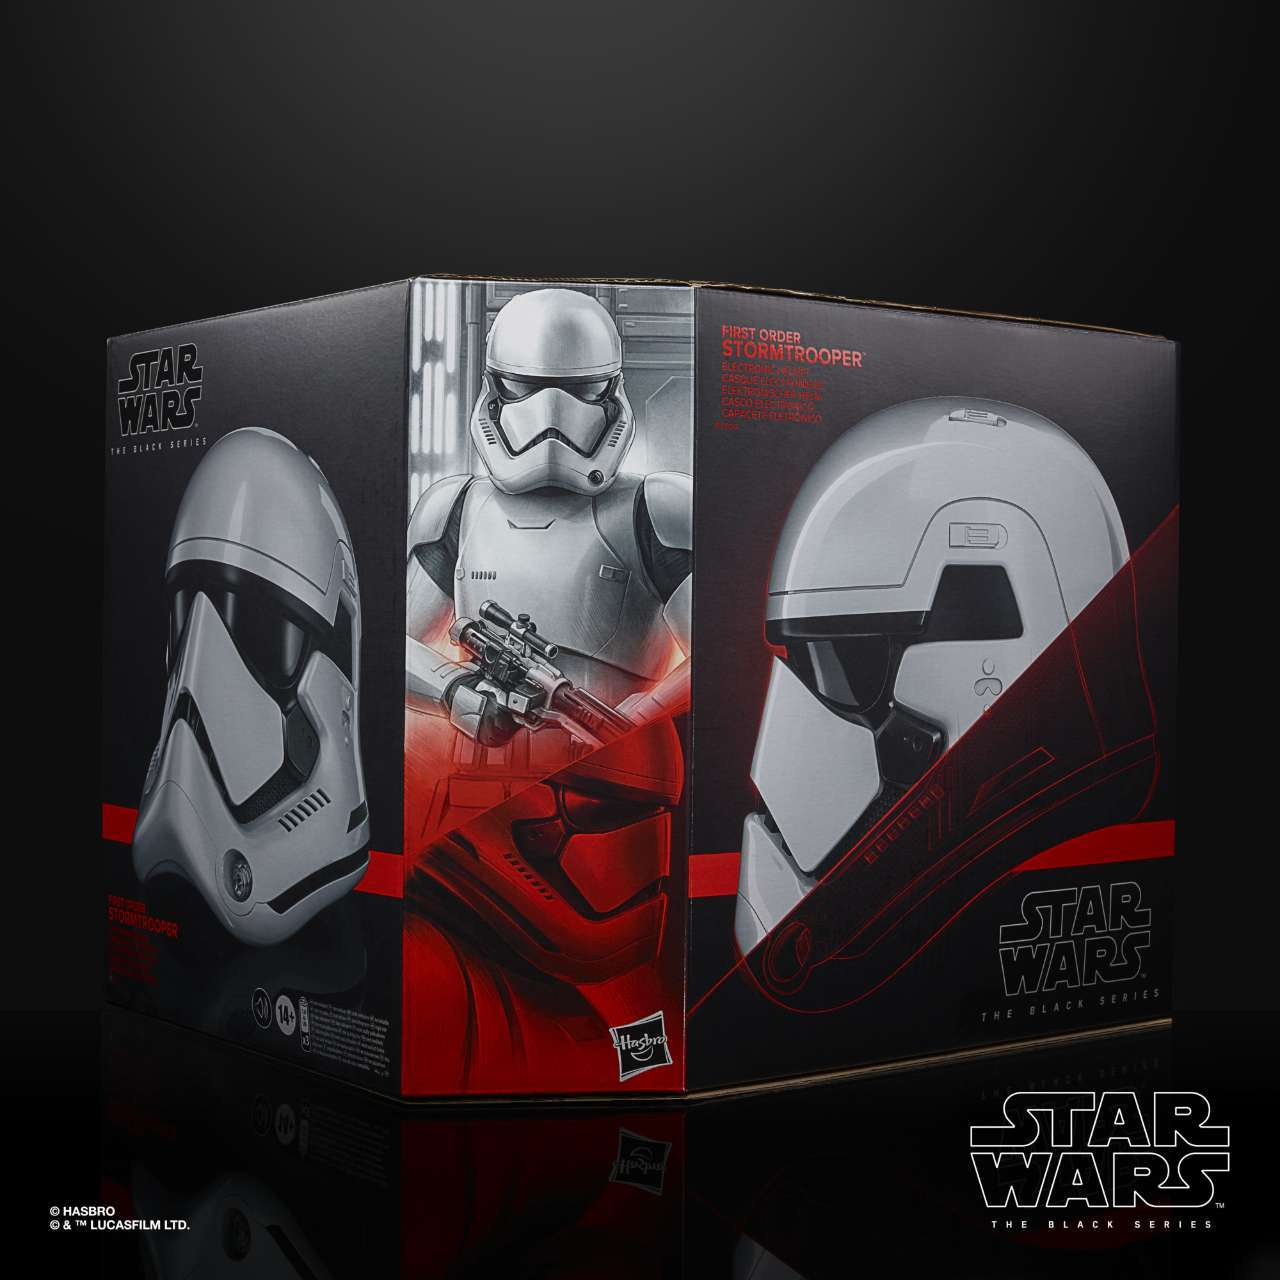 STAR WARS THE BLACK SERIES FIRST ORDER STORMTROOPER ELECTRONIC HELMET - pckging (1)